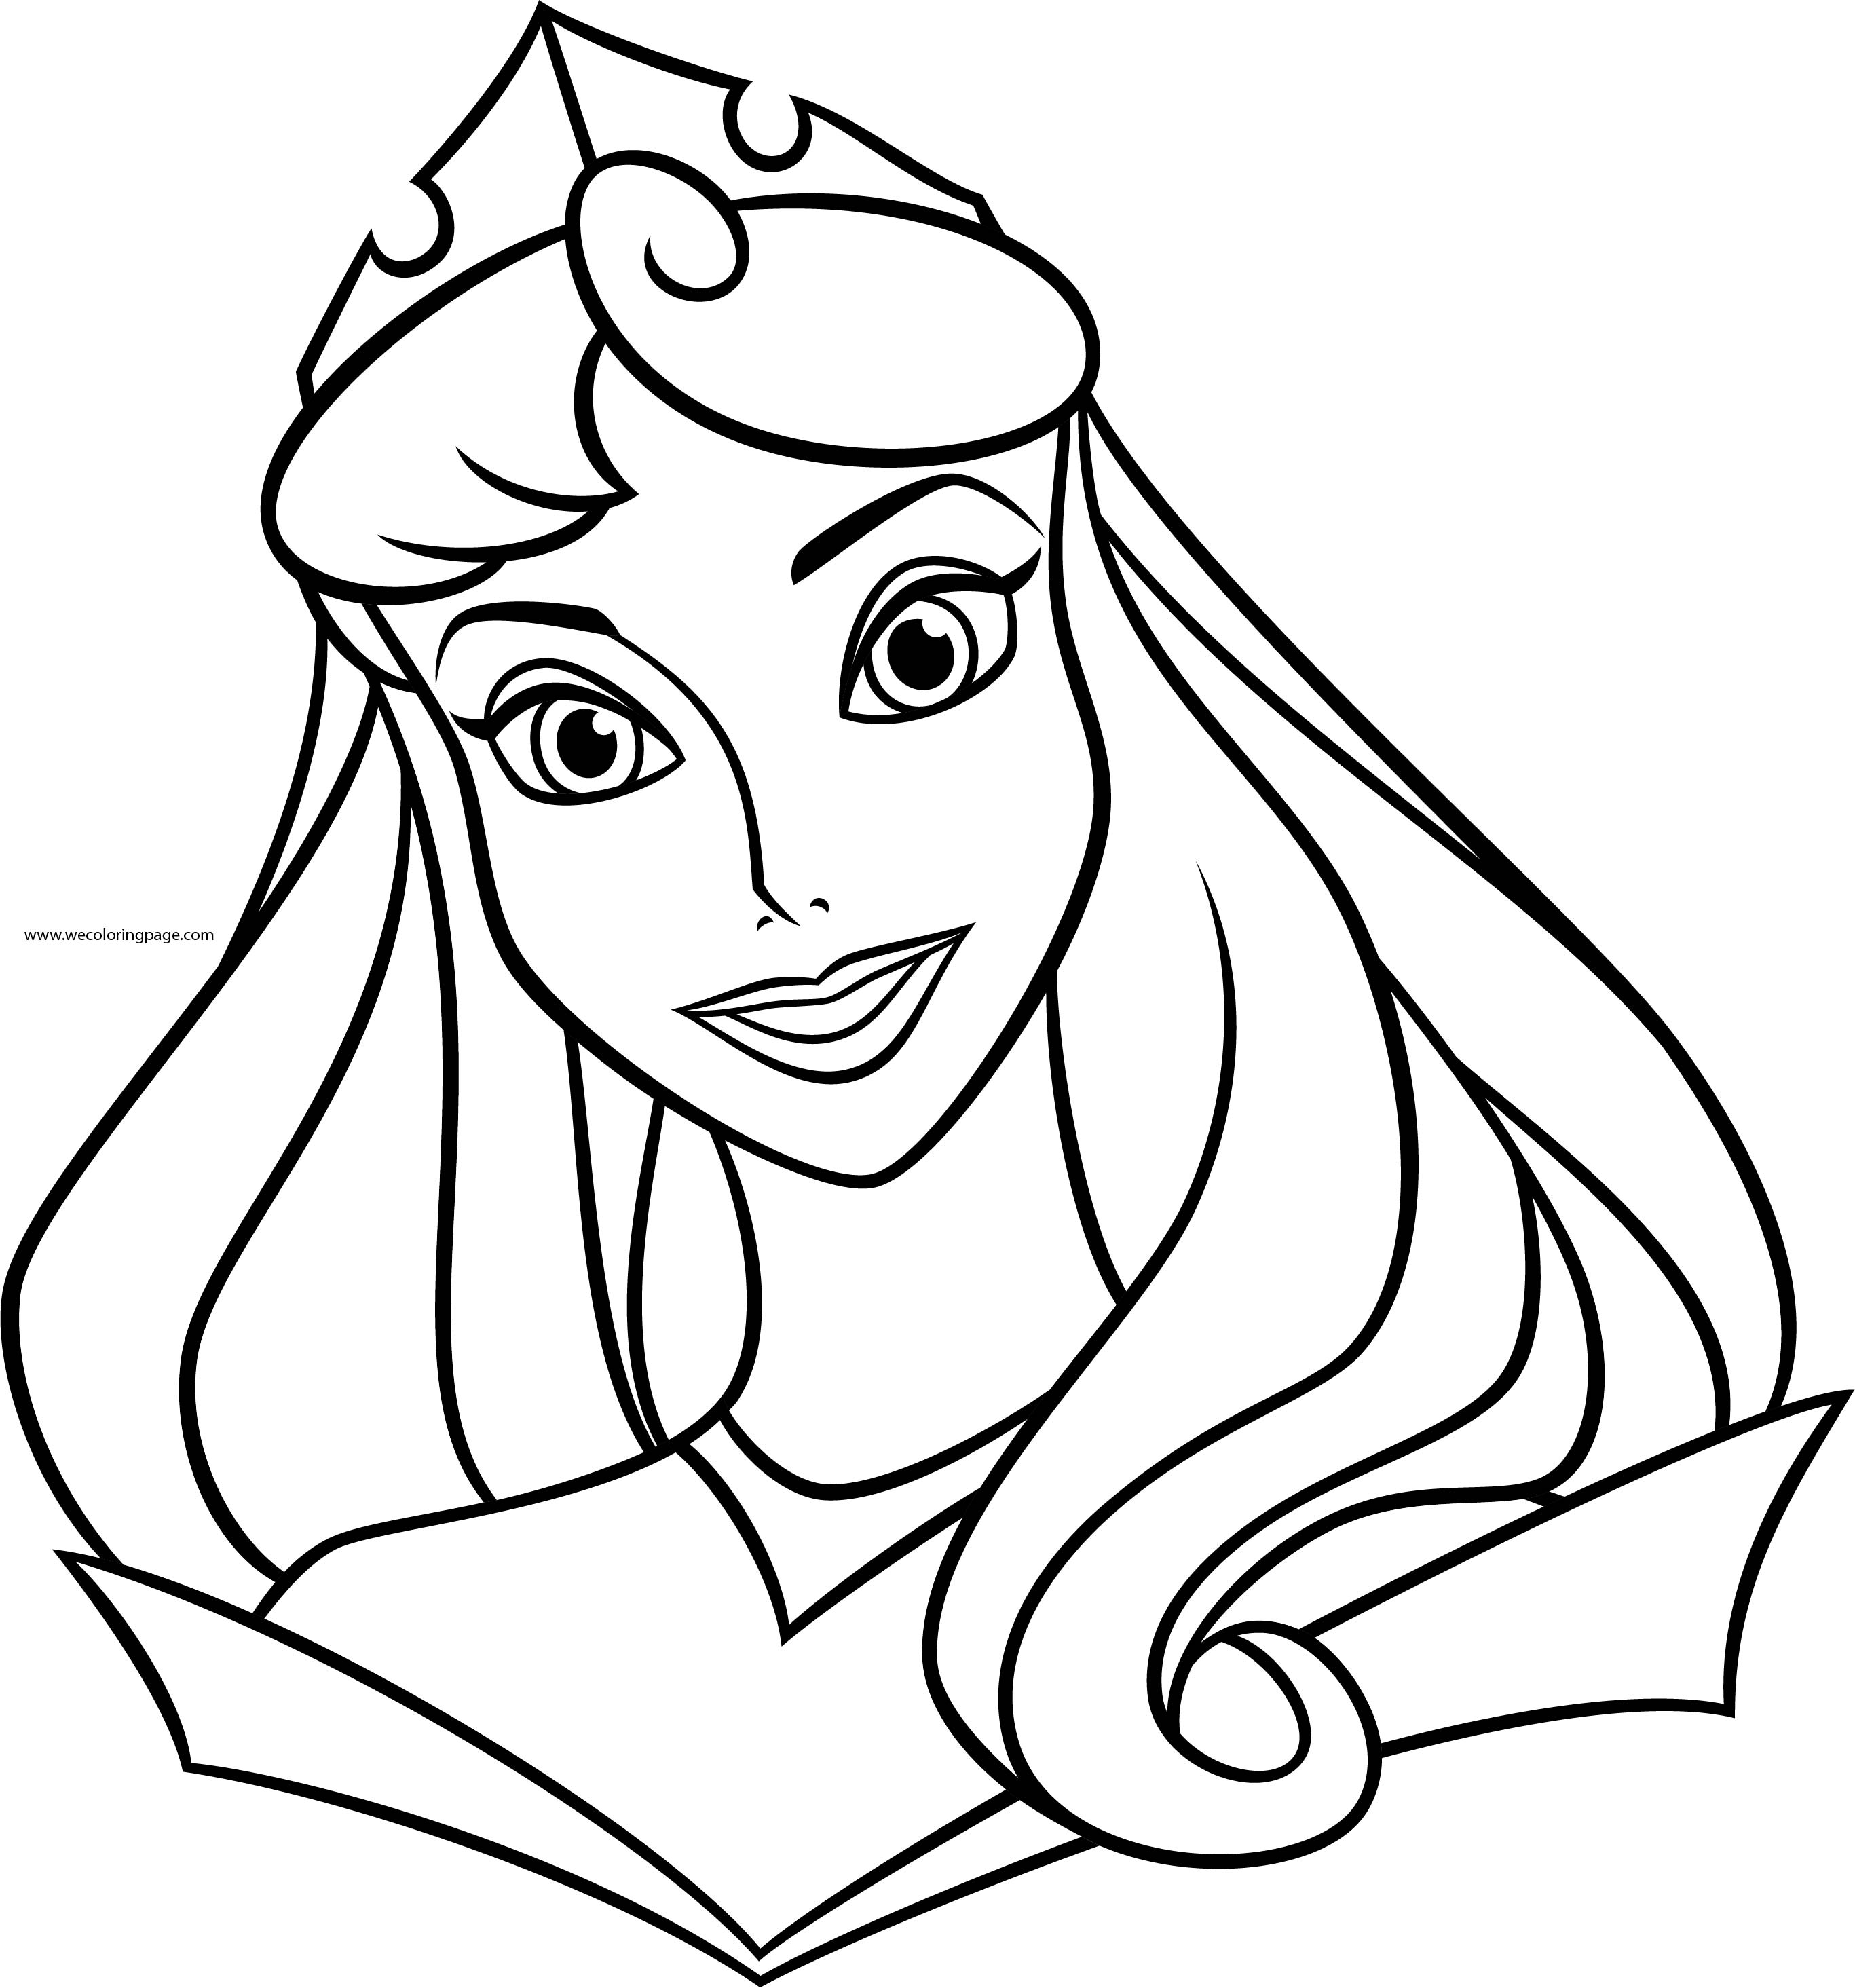 Coloring Page Princess Face Disney Cinderella Princess Big Face